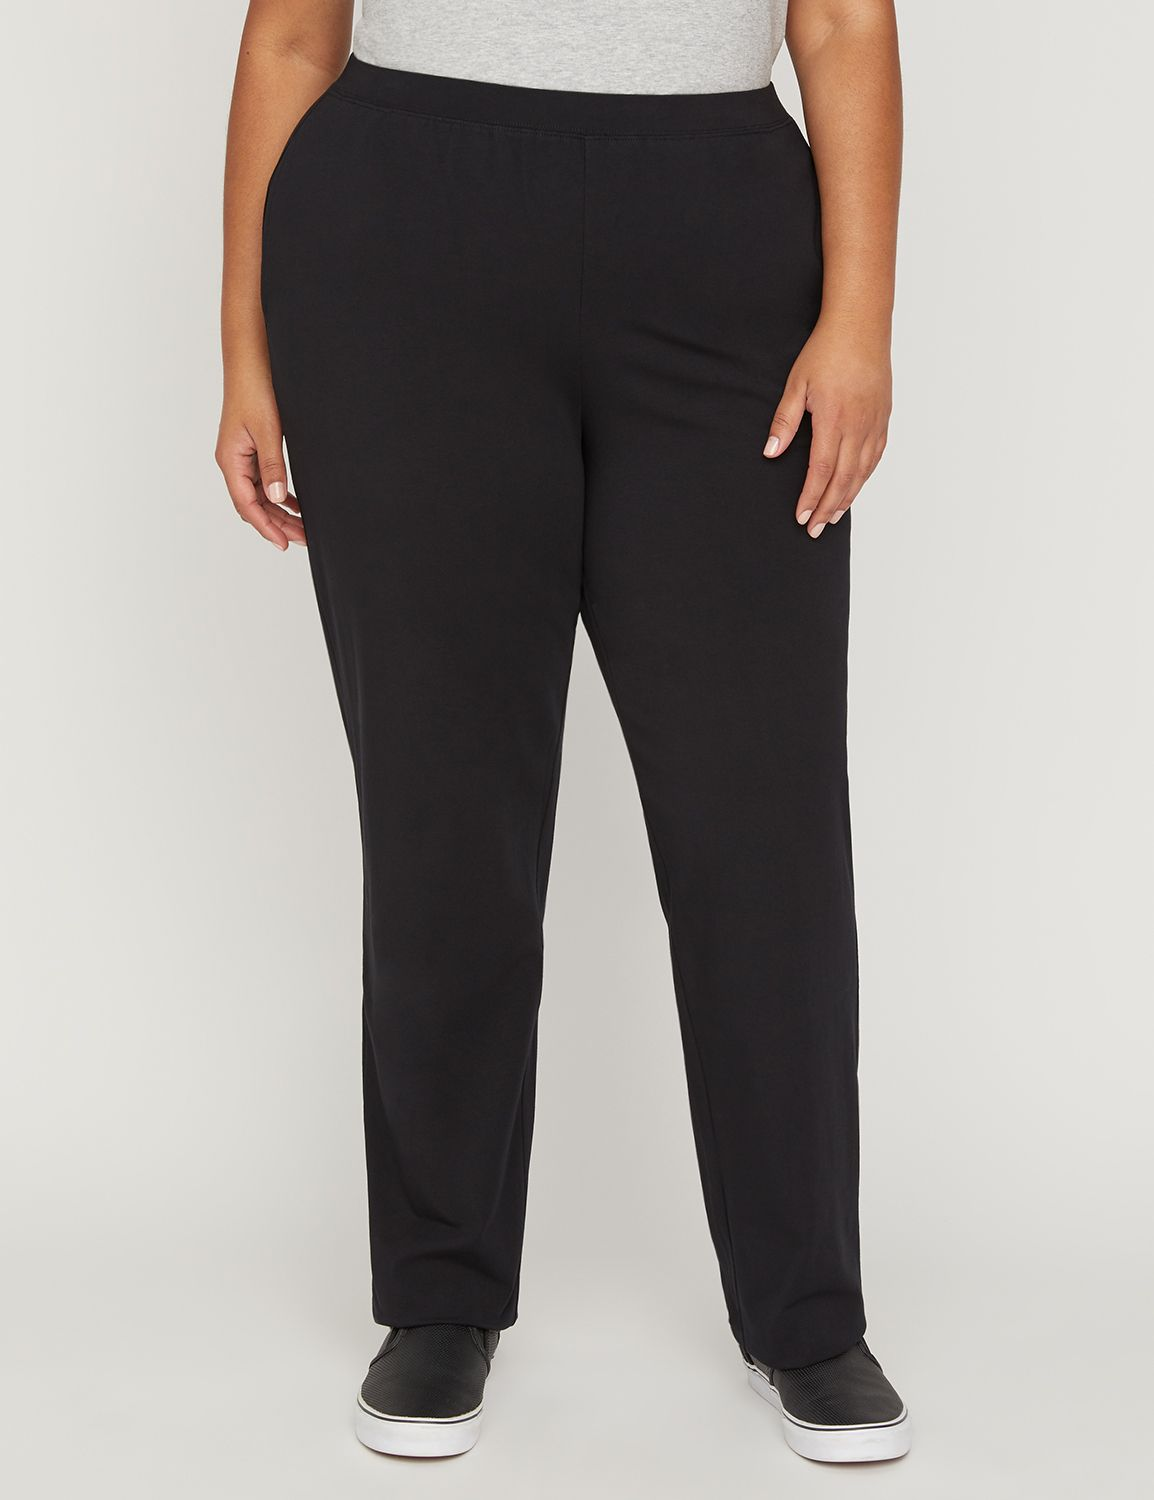 Suprema Knit Pant (Classic Colors) Suprema Knit Pant (Classic Colors) MP-300009640